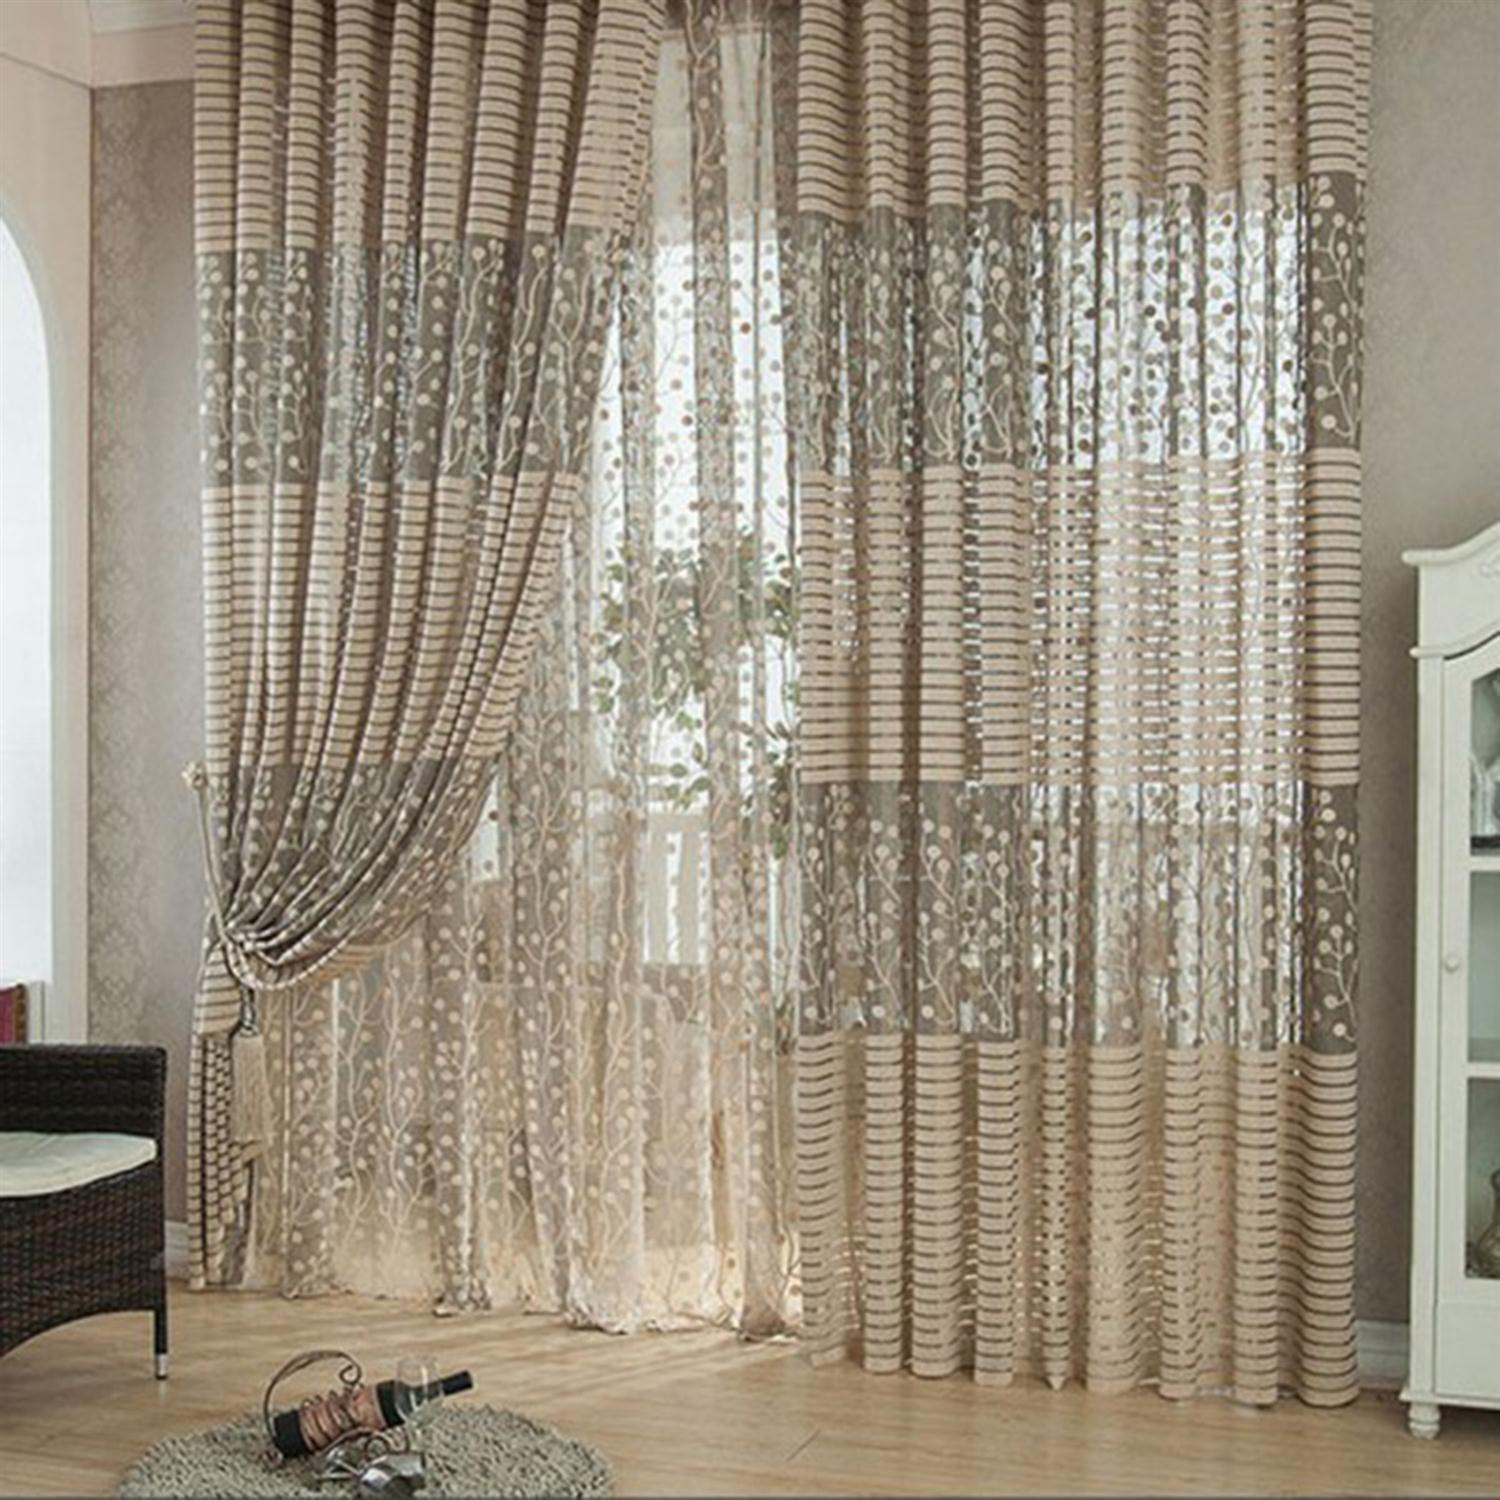 100 200cm lace curtains window scraf valances curtain drapes tulle window readymade blind